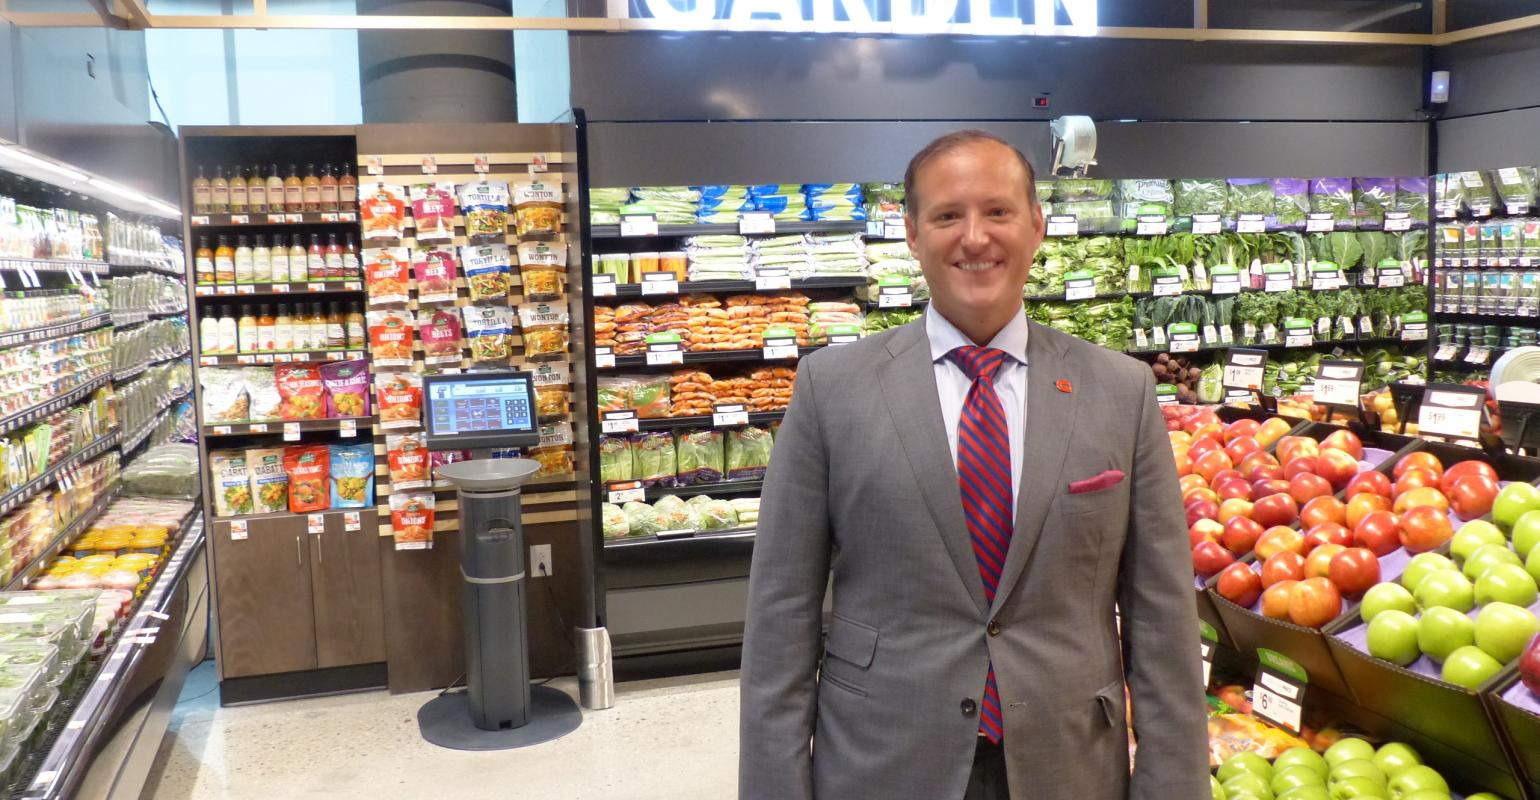 Giant Food Stores named SN Retailer of the Year